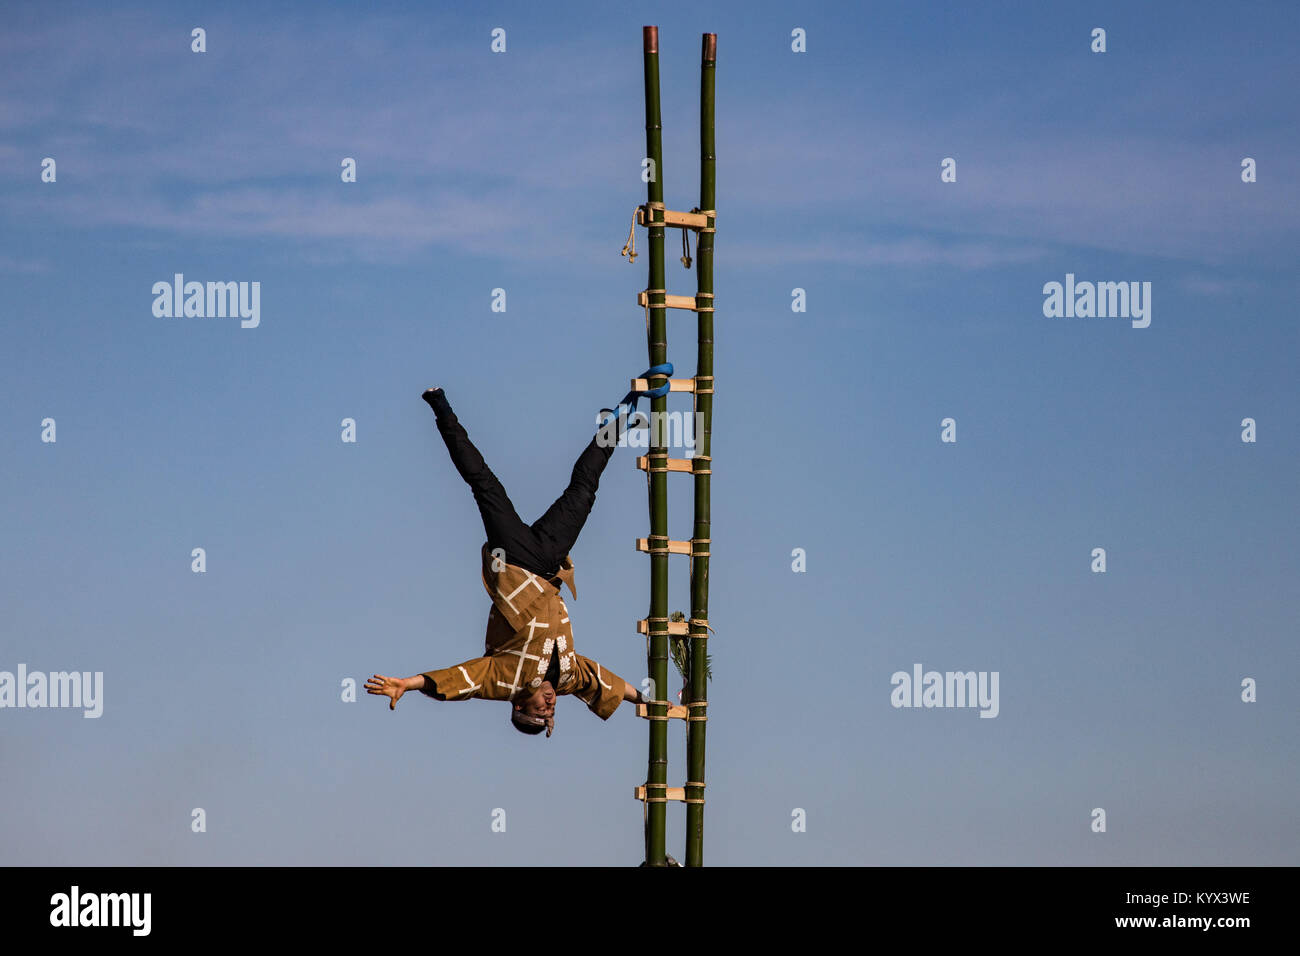 Dezome-shiki Edo Firefighter Stunts - Dezome-shiki is an annual event that takes place early January each year, Stock Photo